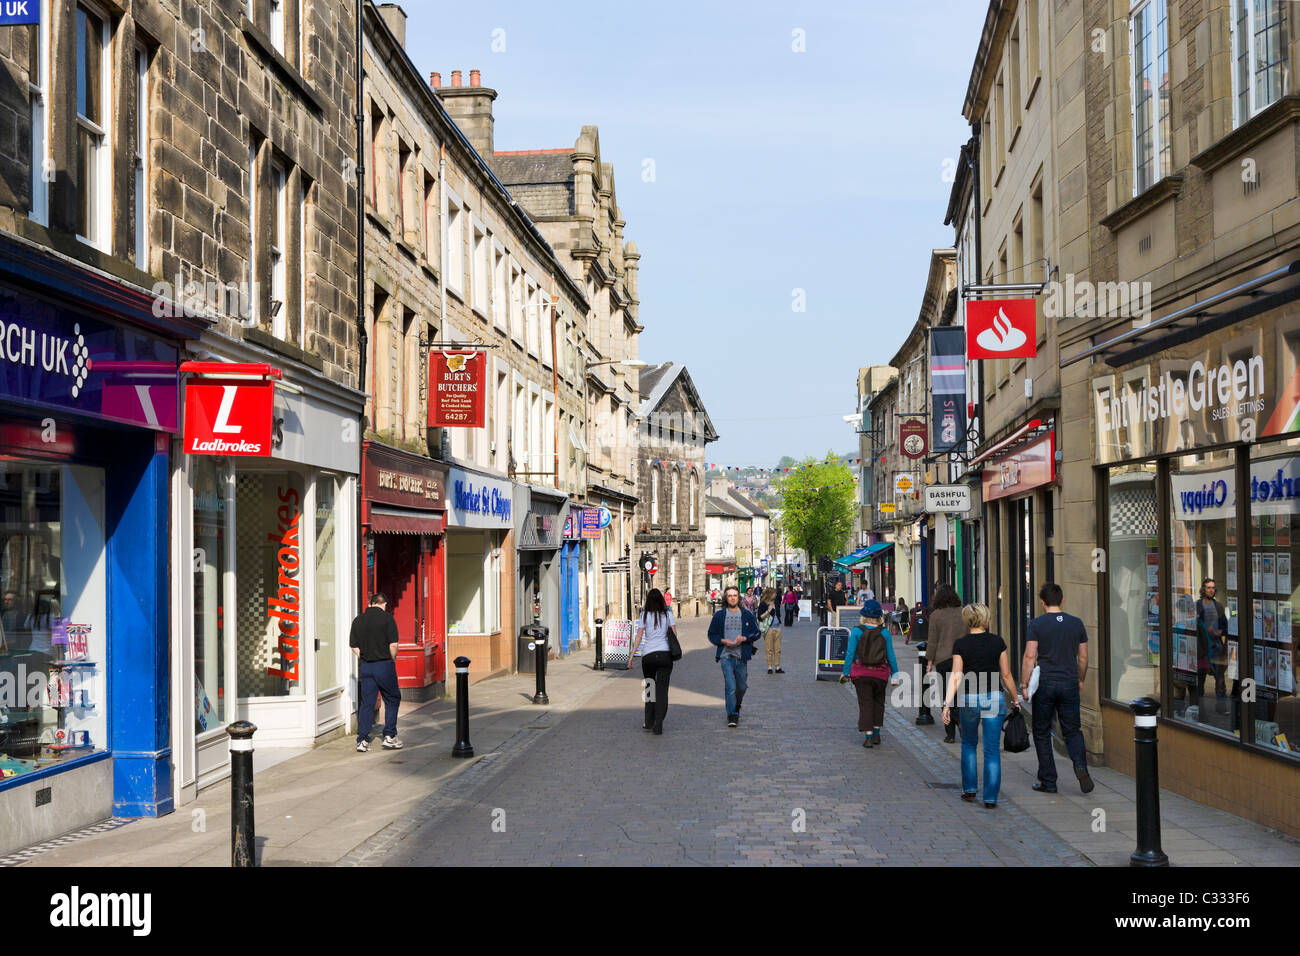 Shops on Market Street in the historic city centre, Lancaster, Lancashire, UK - Stock Image